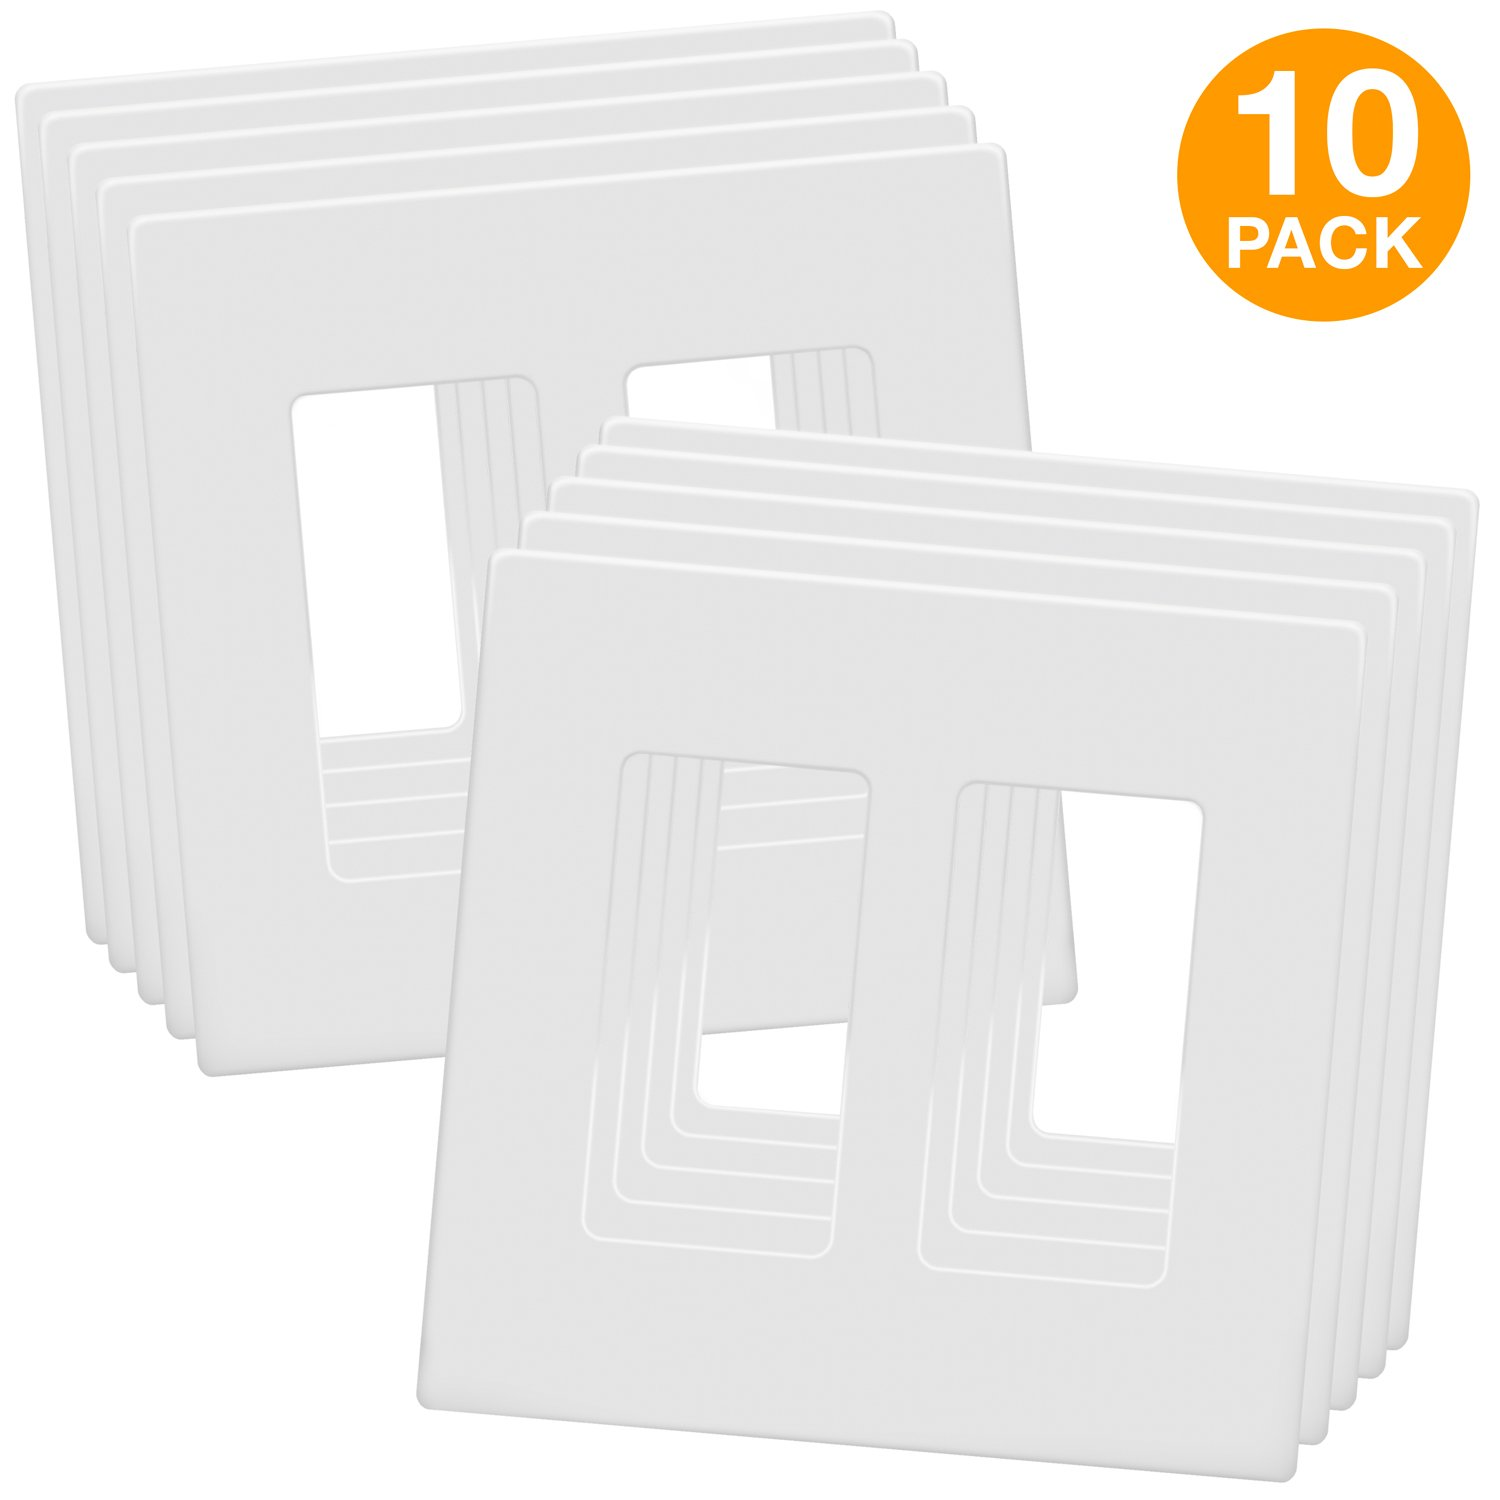 ENERLITES SI8832-W SI8832-WTP Screwless Decorator Wall Plates Child Safe Outlet Covers, Size 2-Gang 4.68'' H x 4.73'' L, Unbreakable Polycarbonate Thermoplastic, SI8832-W-10PCS, White (10 Pack), 1 by ENERLITES